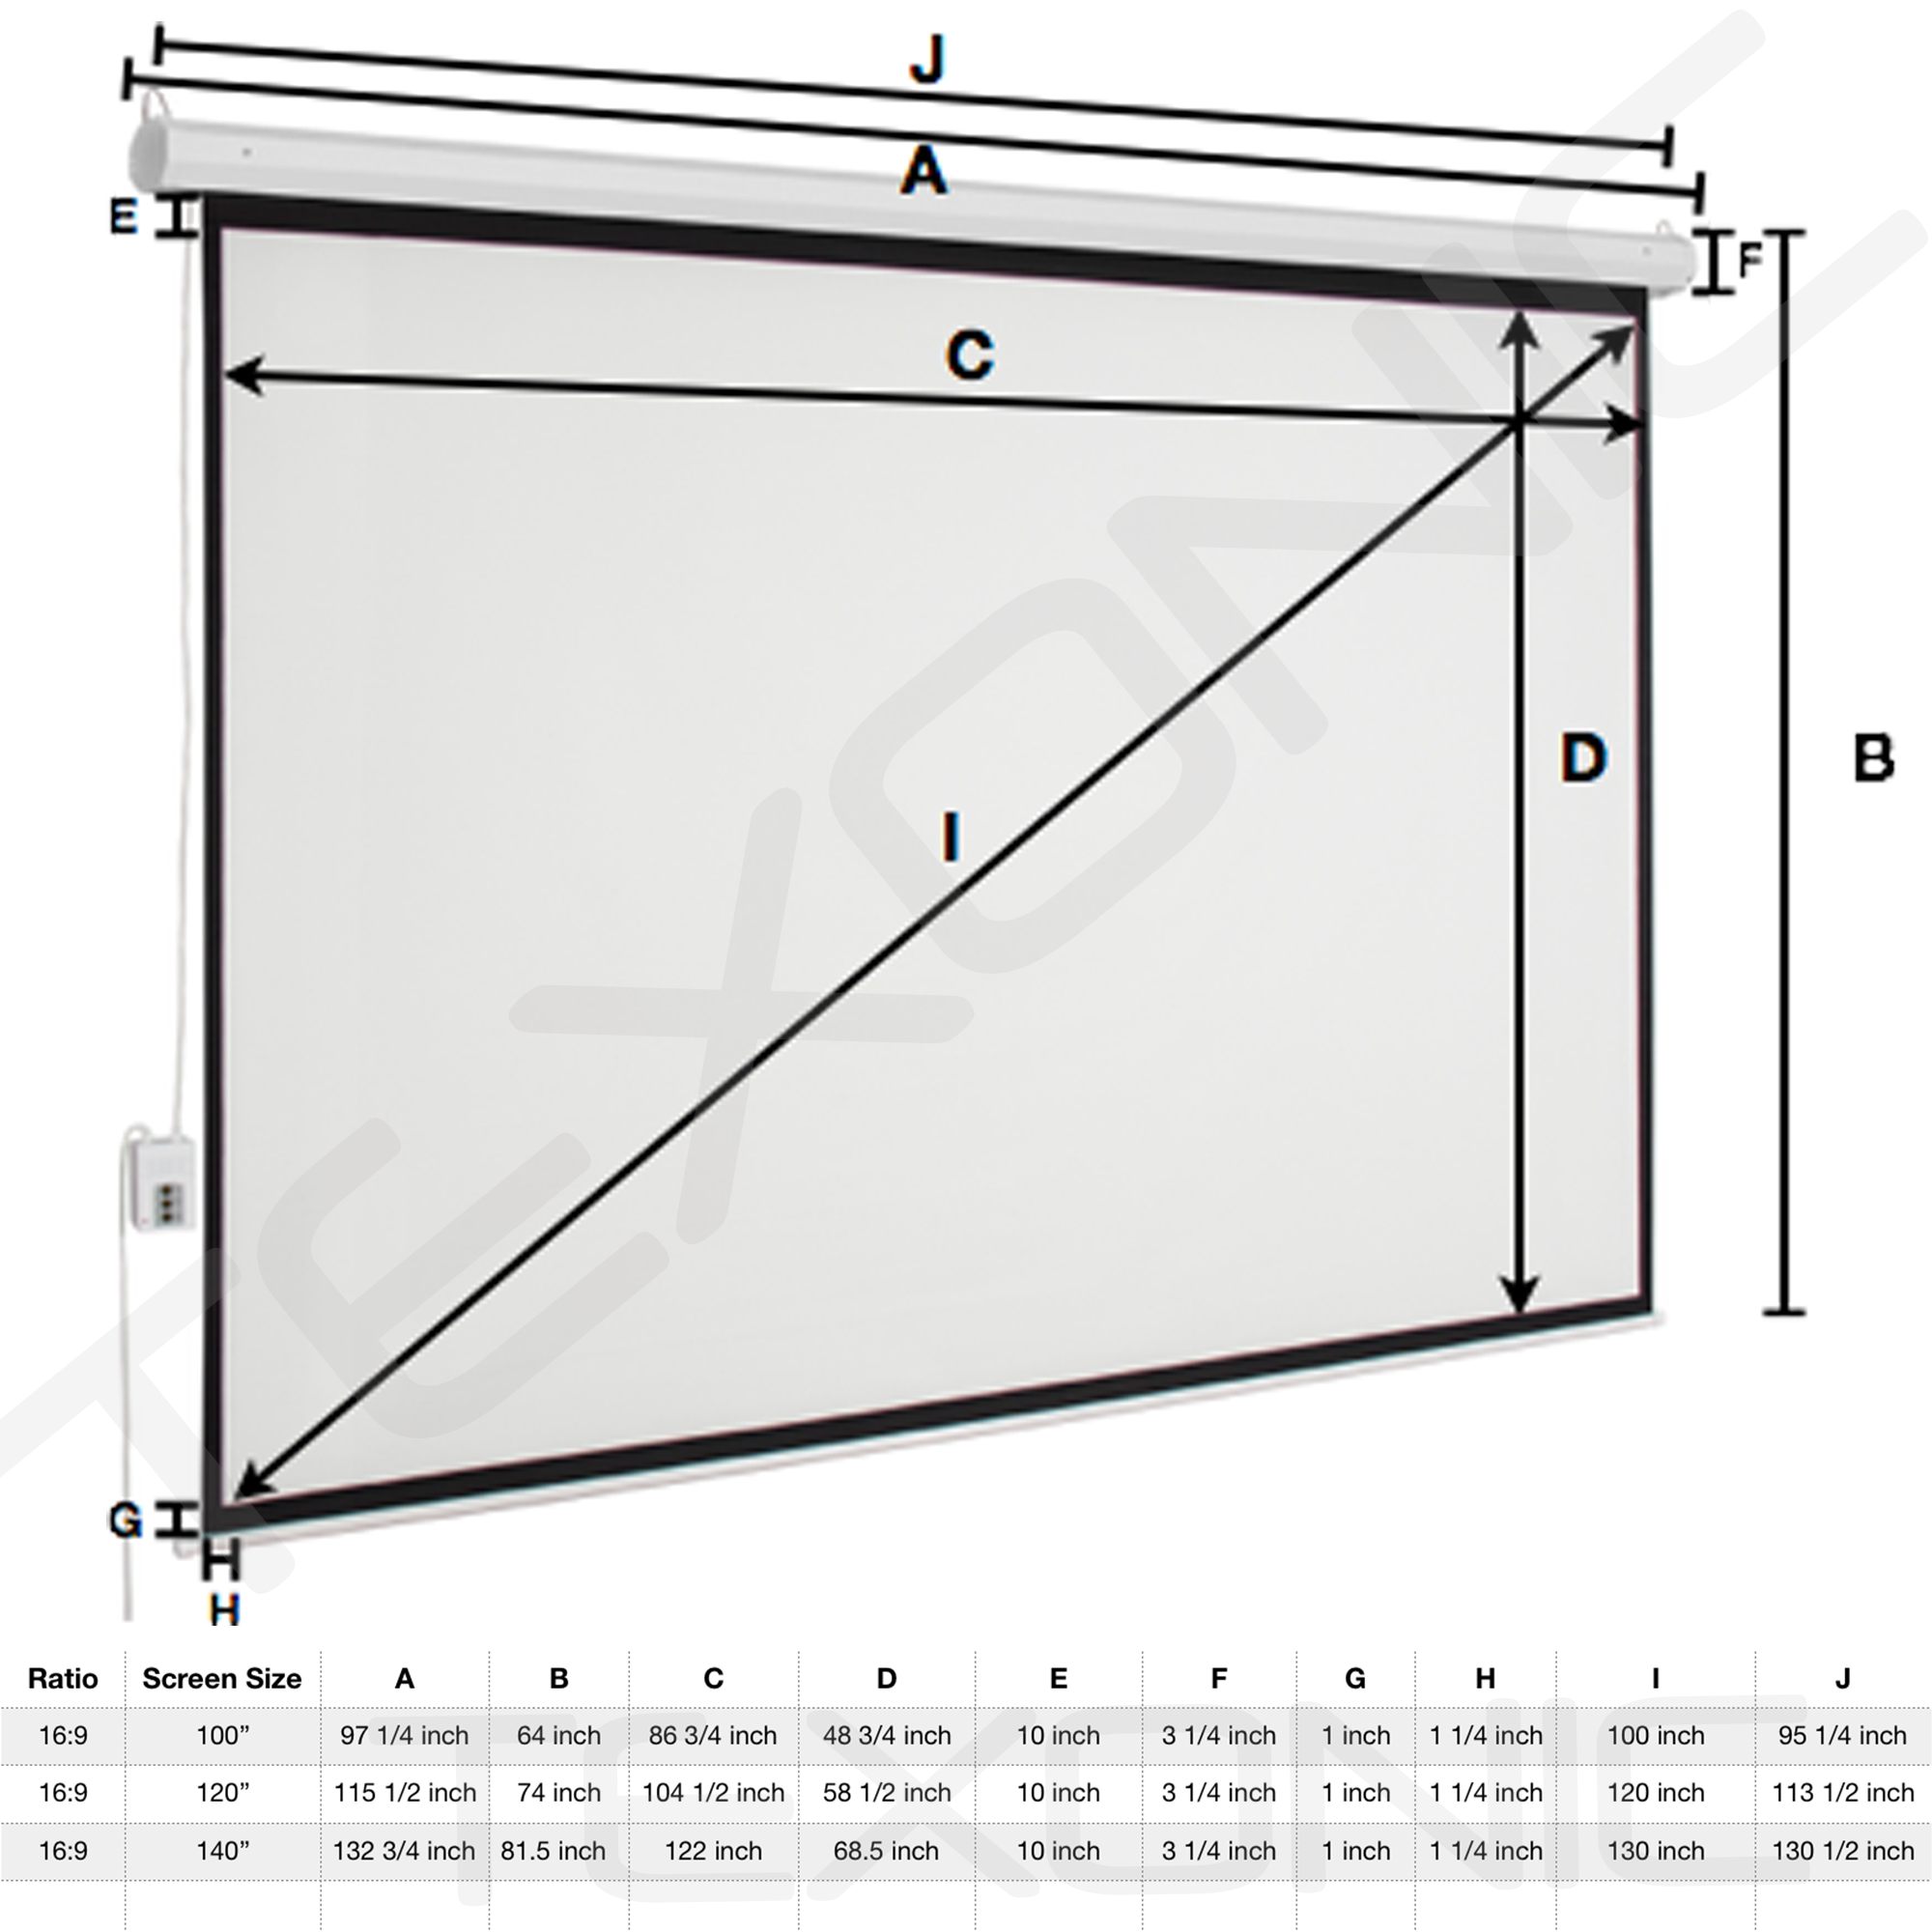 texonic-projector-screen-dimensions.png